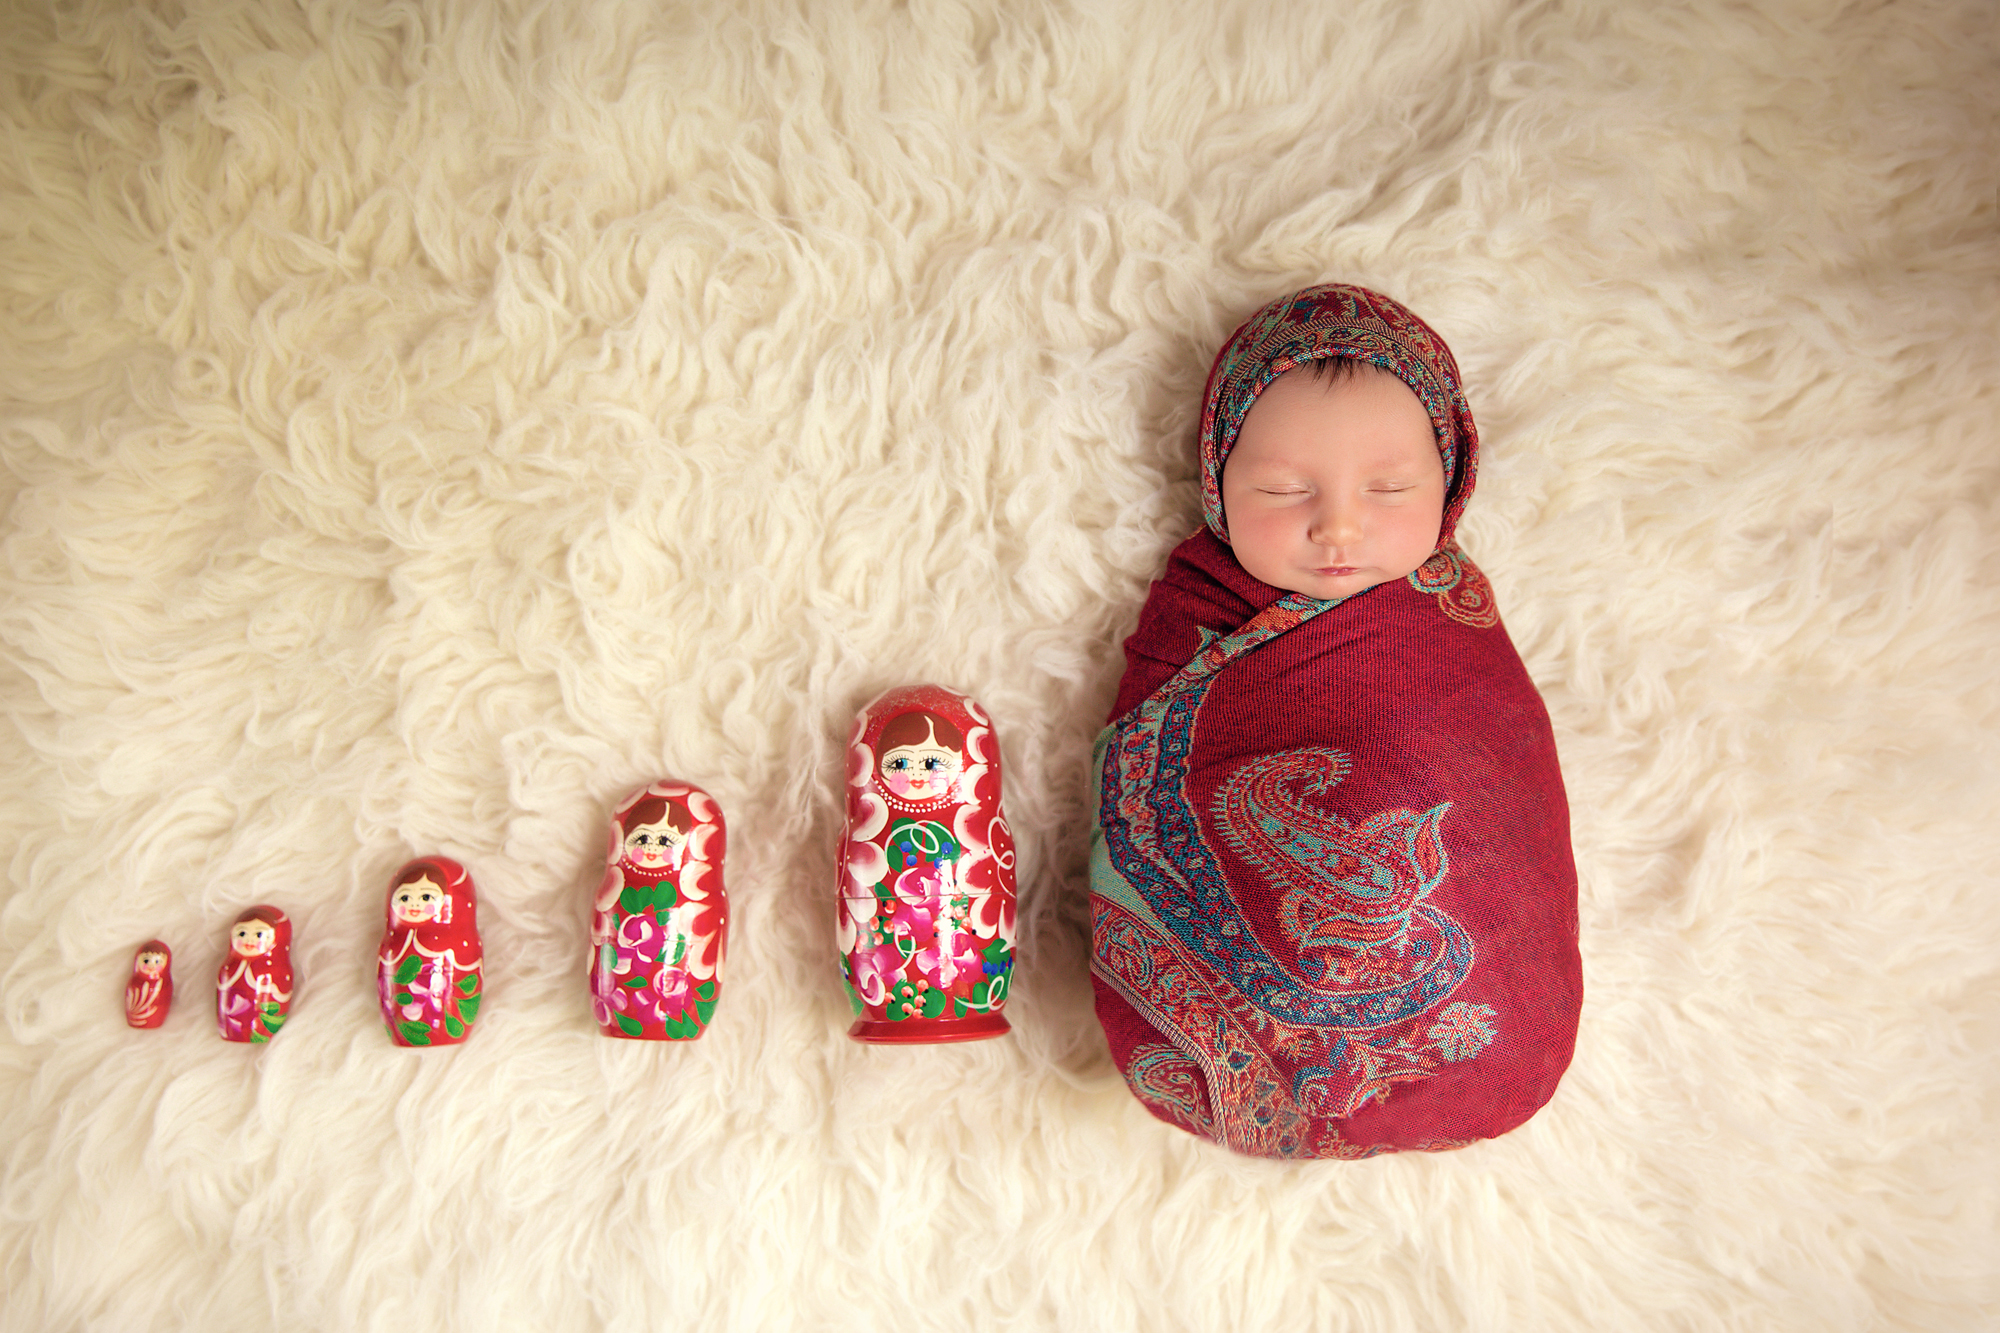 Russian doll. Baby girl is posed like a Russian doll aka Matryoshka. Newborn Photoshoot ideas. Calgary and Airdrie newborn baby photographer - Milashka Photography